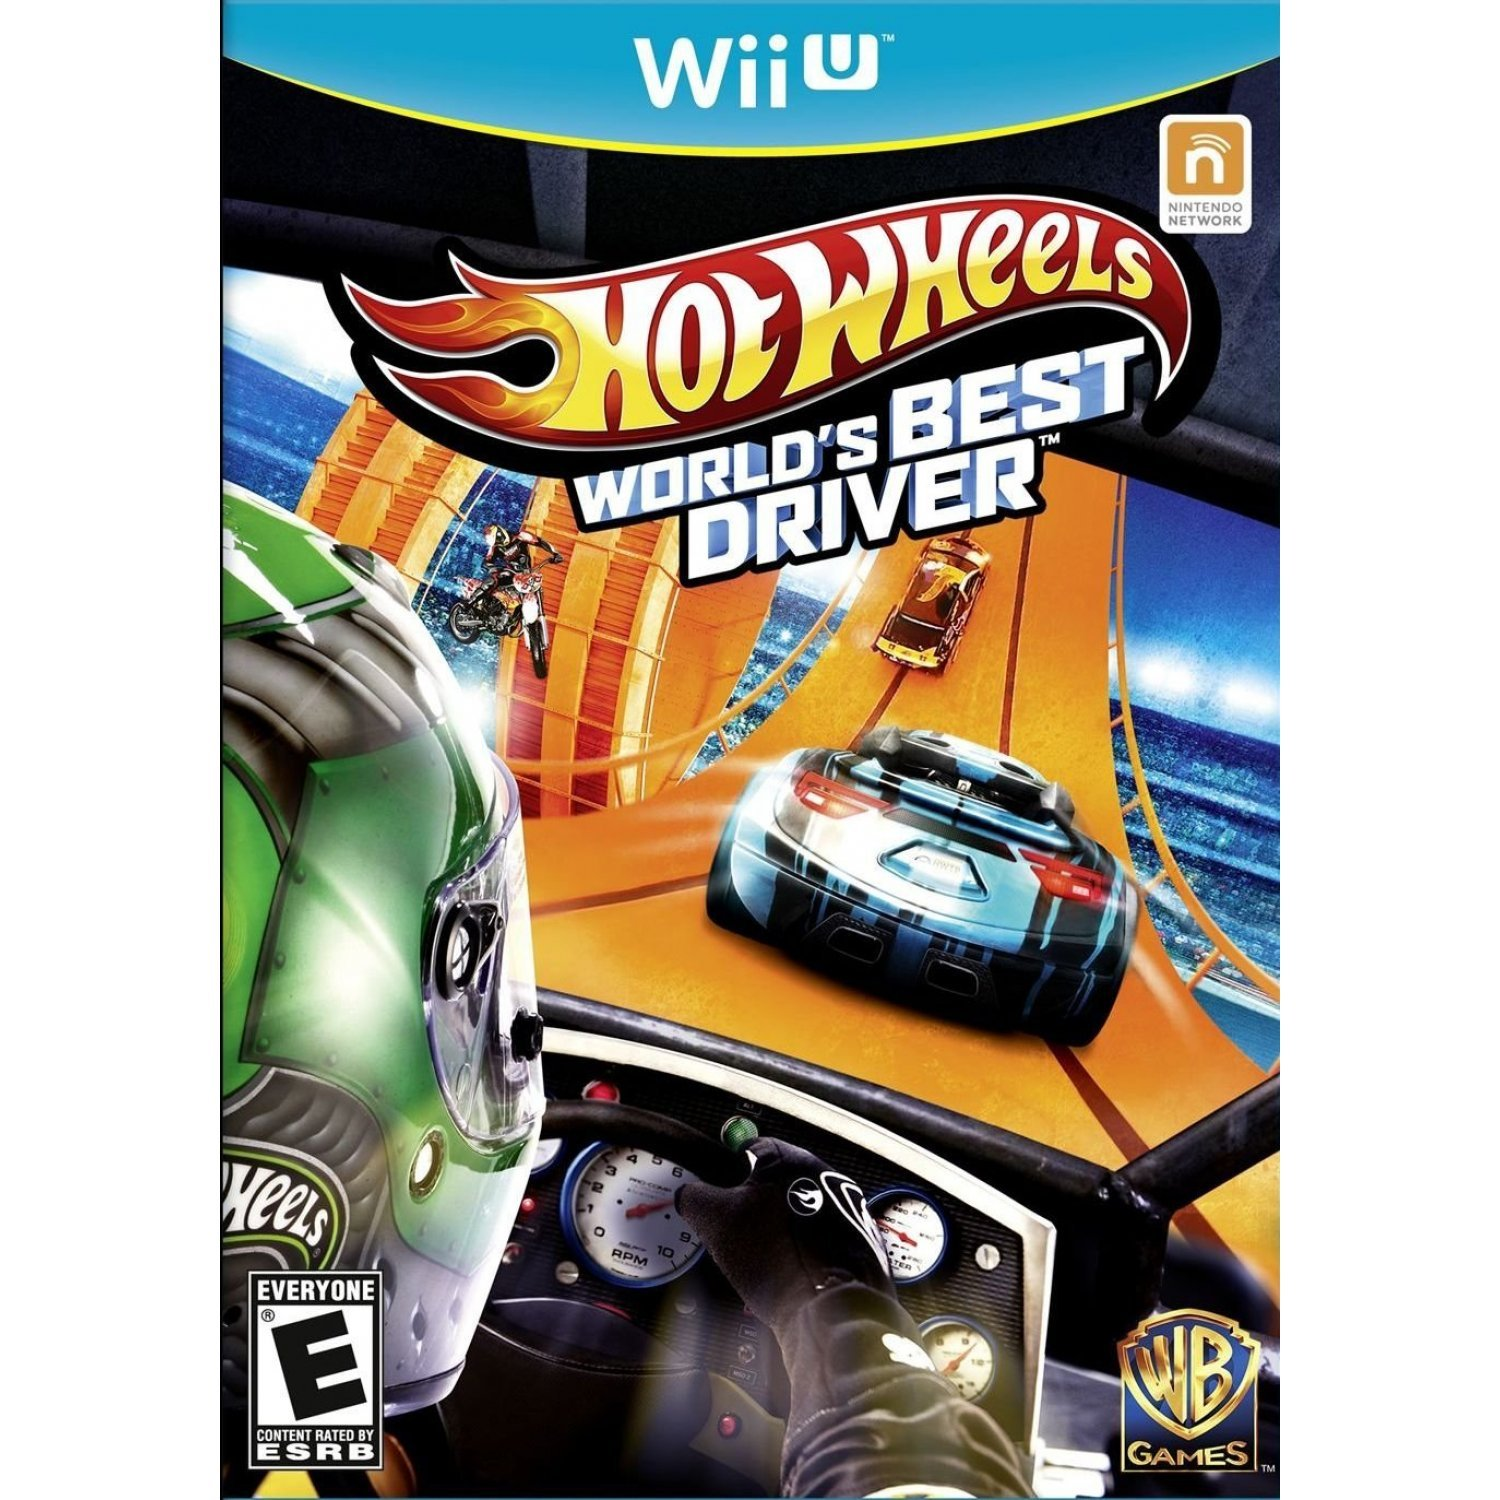 Hot wheels world's best driver 2013 pc